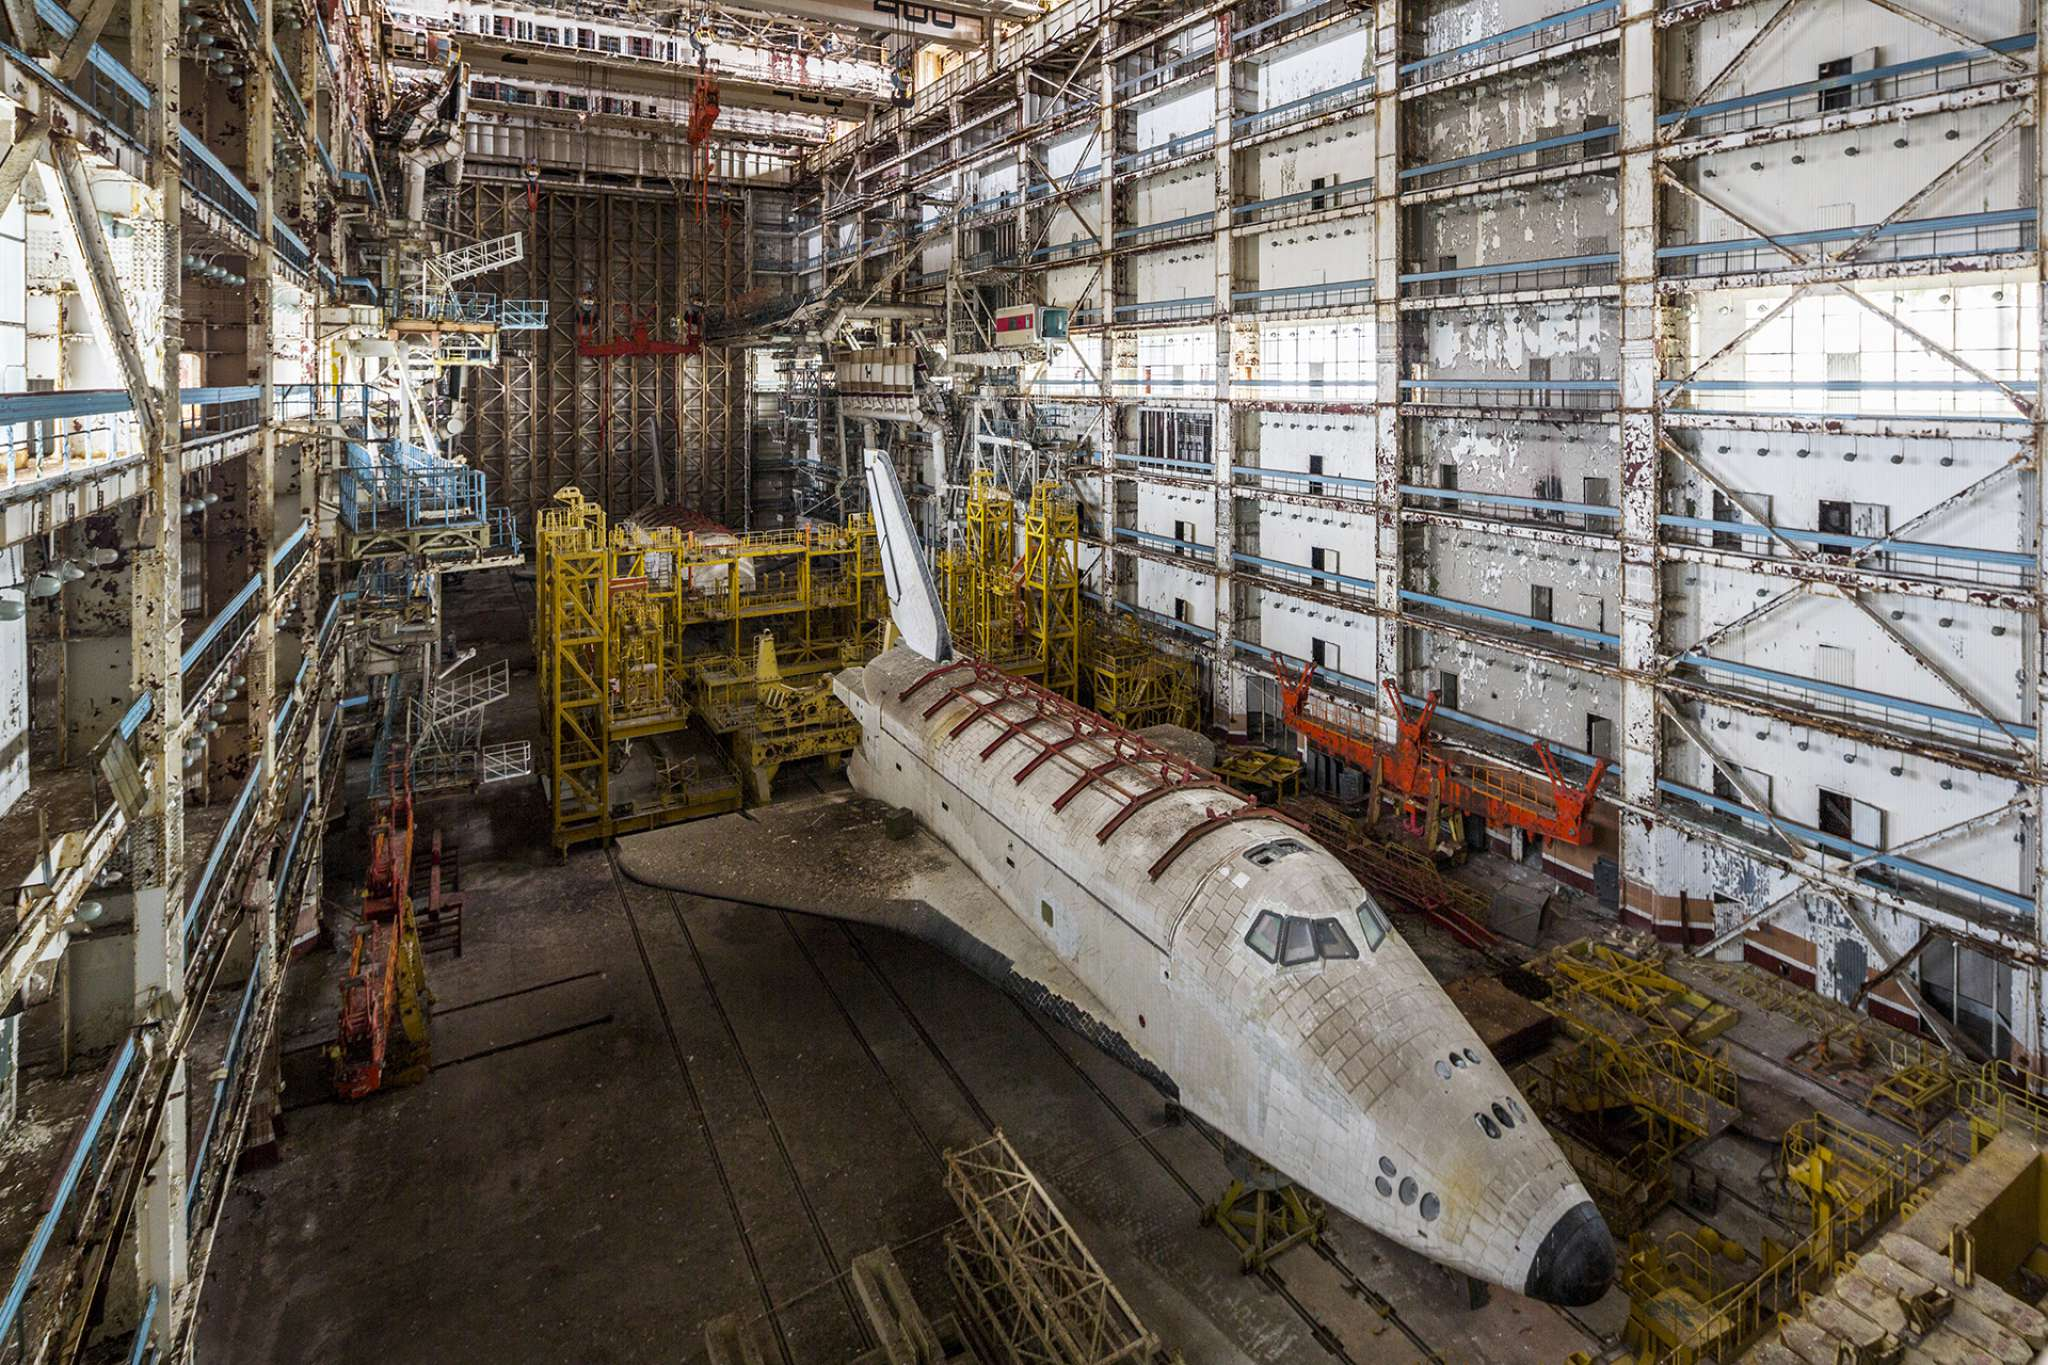 InfoShymkent - French photographer Jonk visited the two Buran in Baikonur Cosmodrome